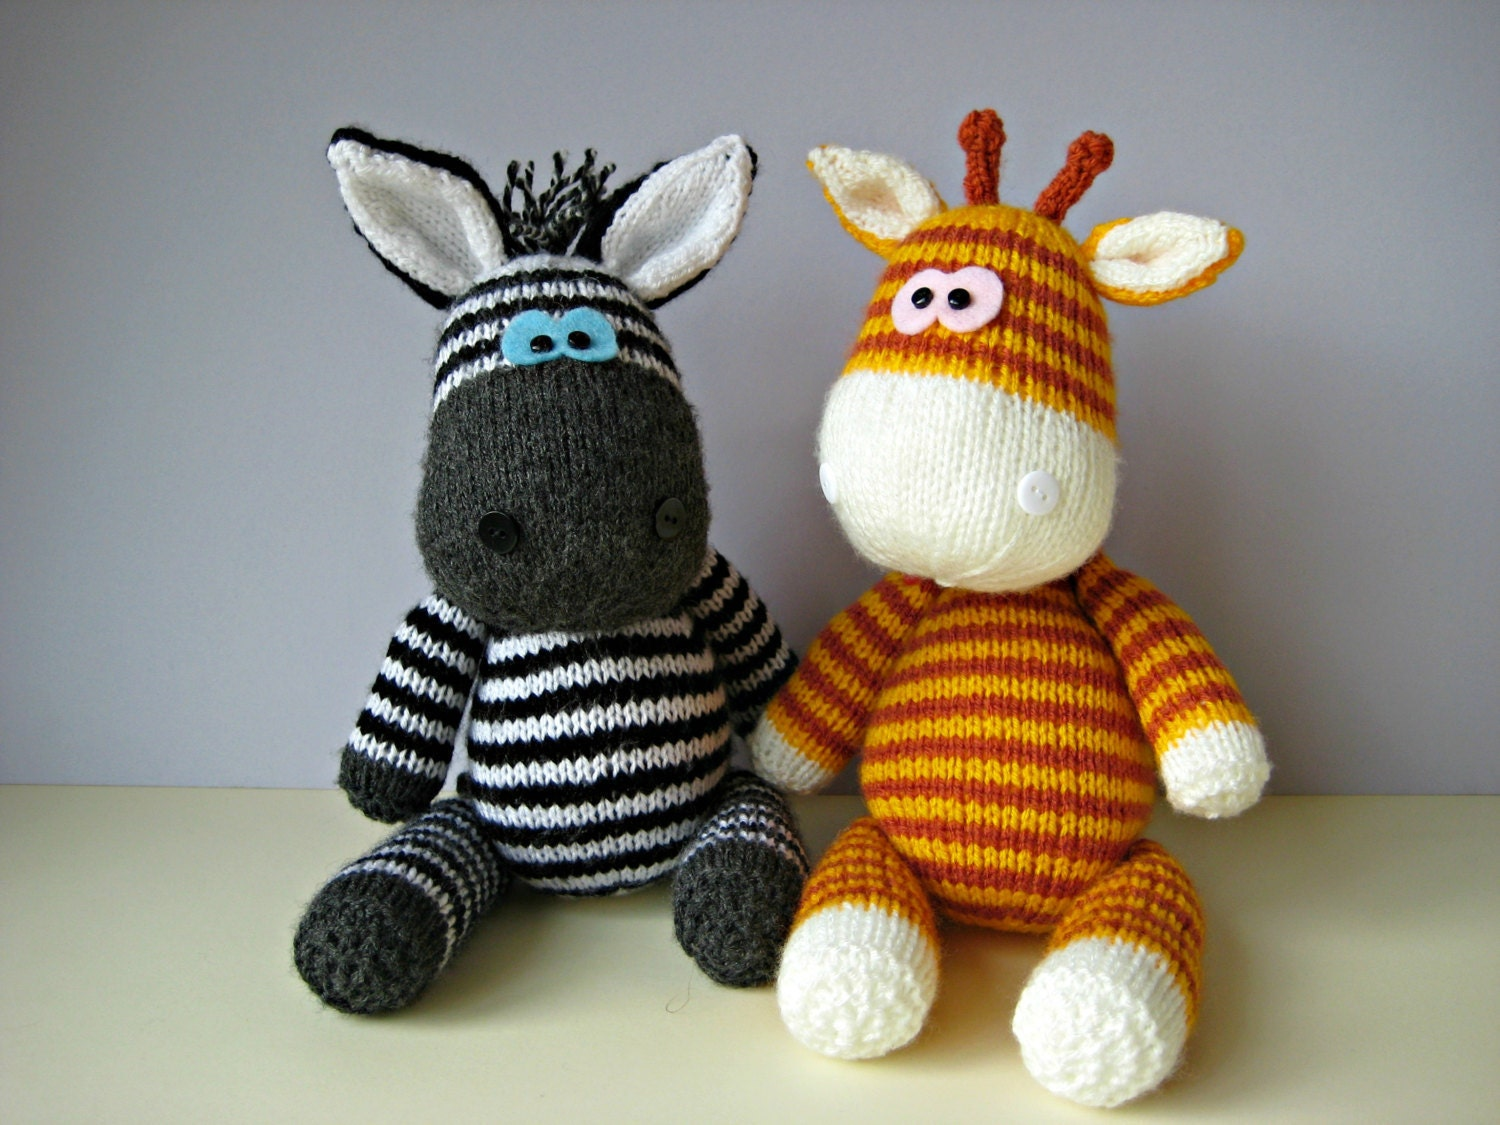 Dog Sweater Patterns Knitting : Gerry Giraffe and Ziggy Zebra toy knitting patterns